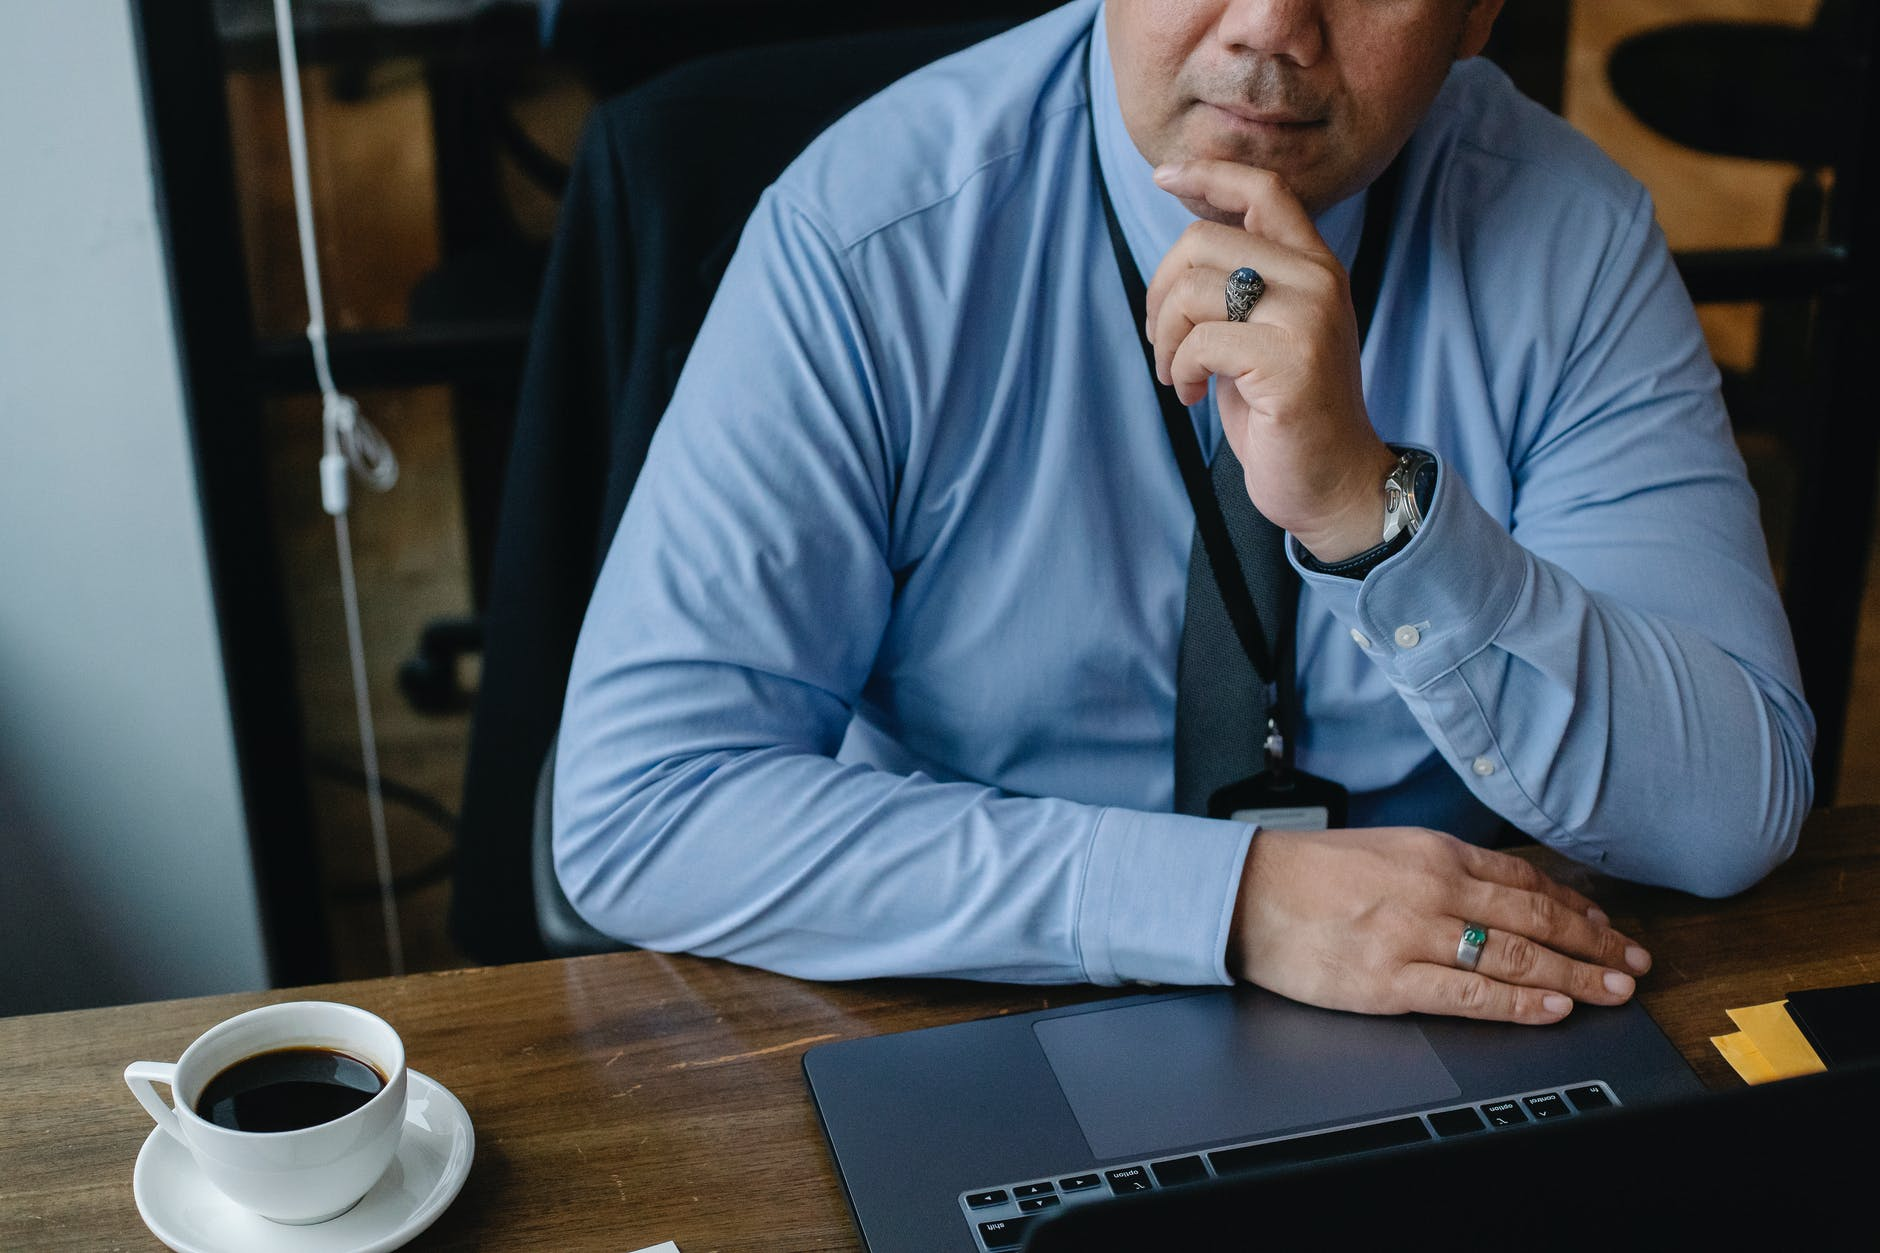 serious businessman touching chin while working on laptop